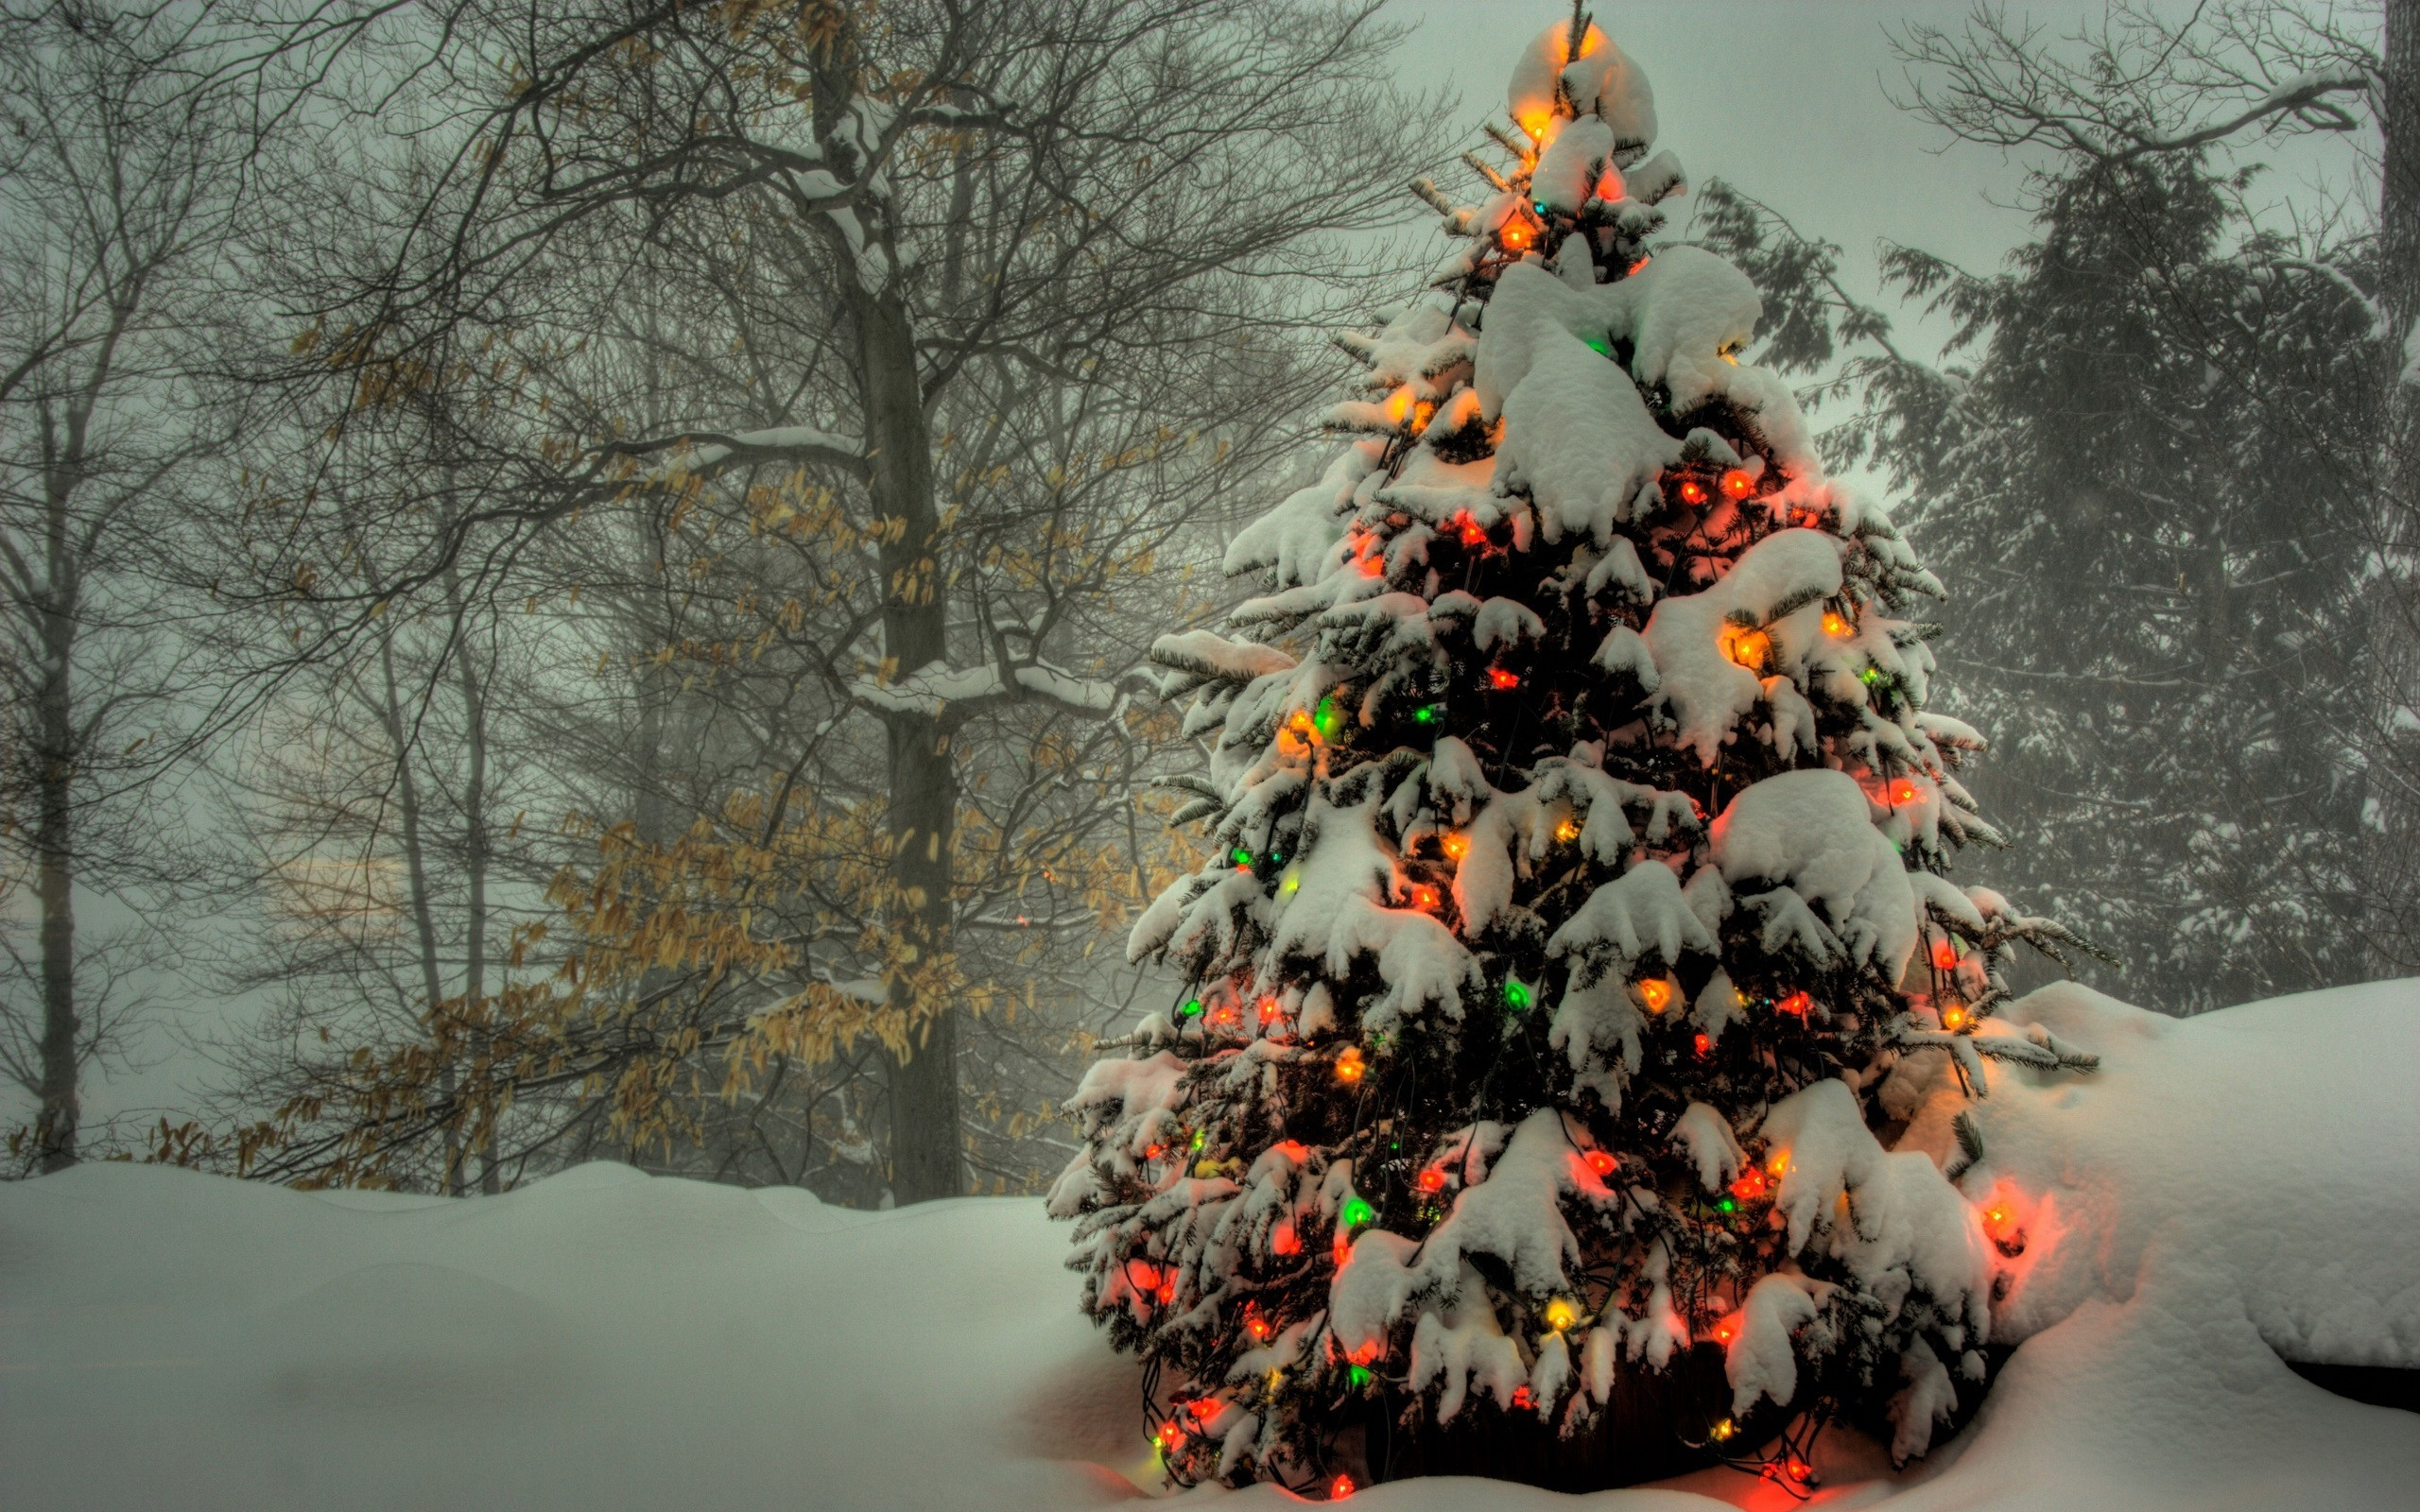 499 best wallpaper images on Pinterest   Christmas scenes, Snow and  Christmas art